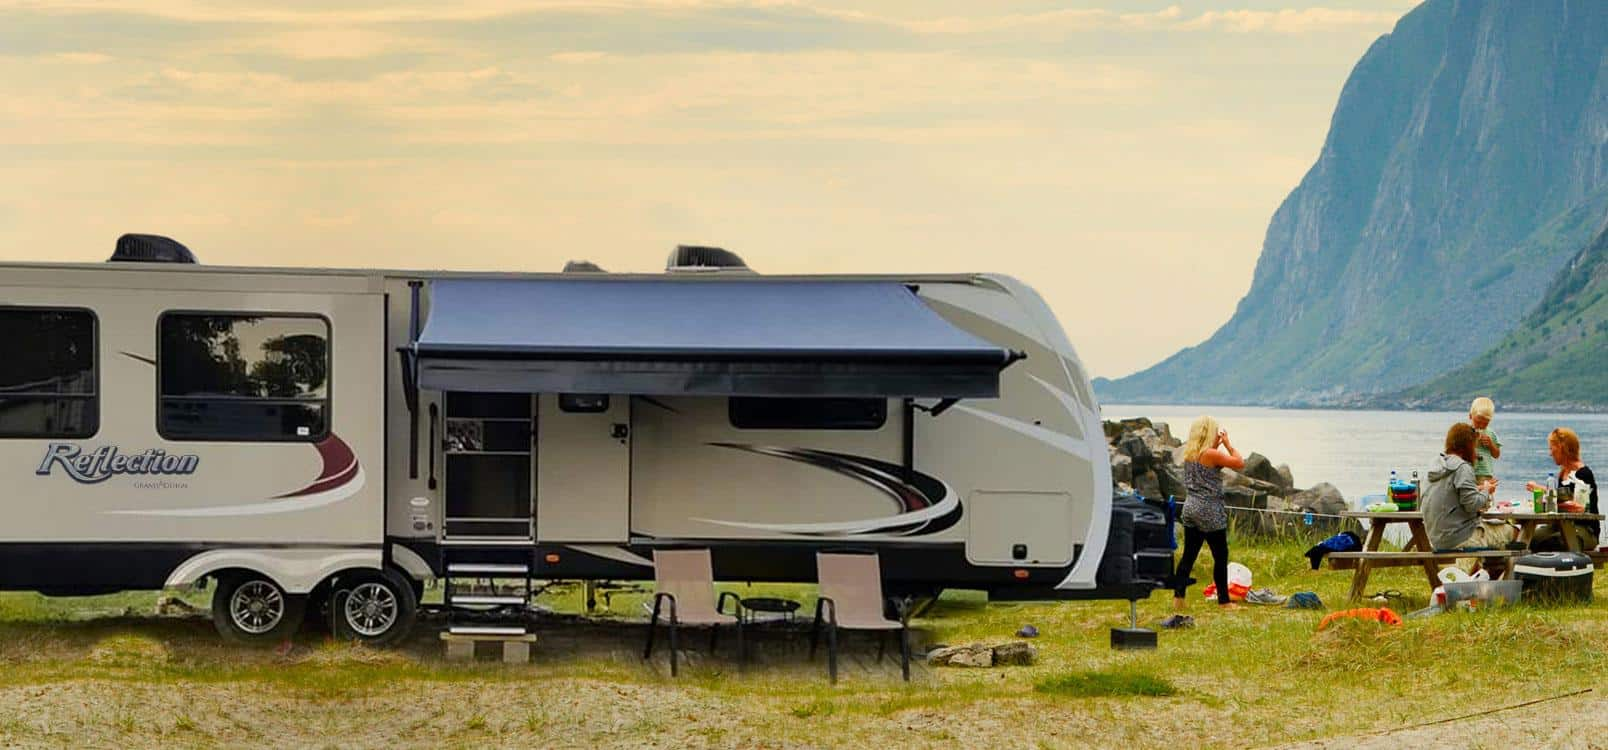 Best Travel Trailers On The 2018 Market: 10 Best Brands ...